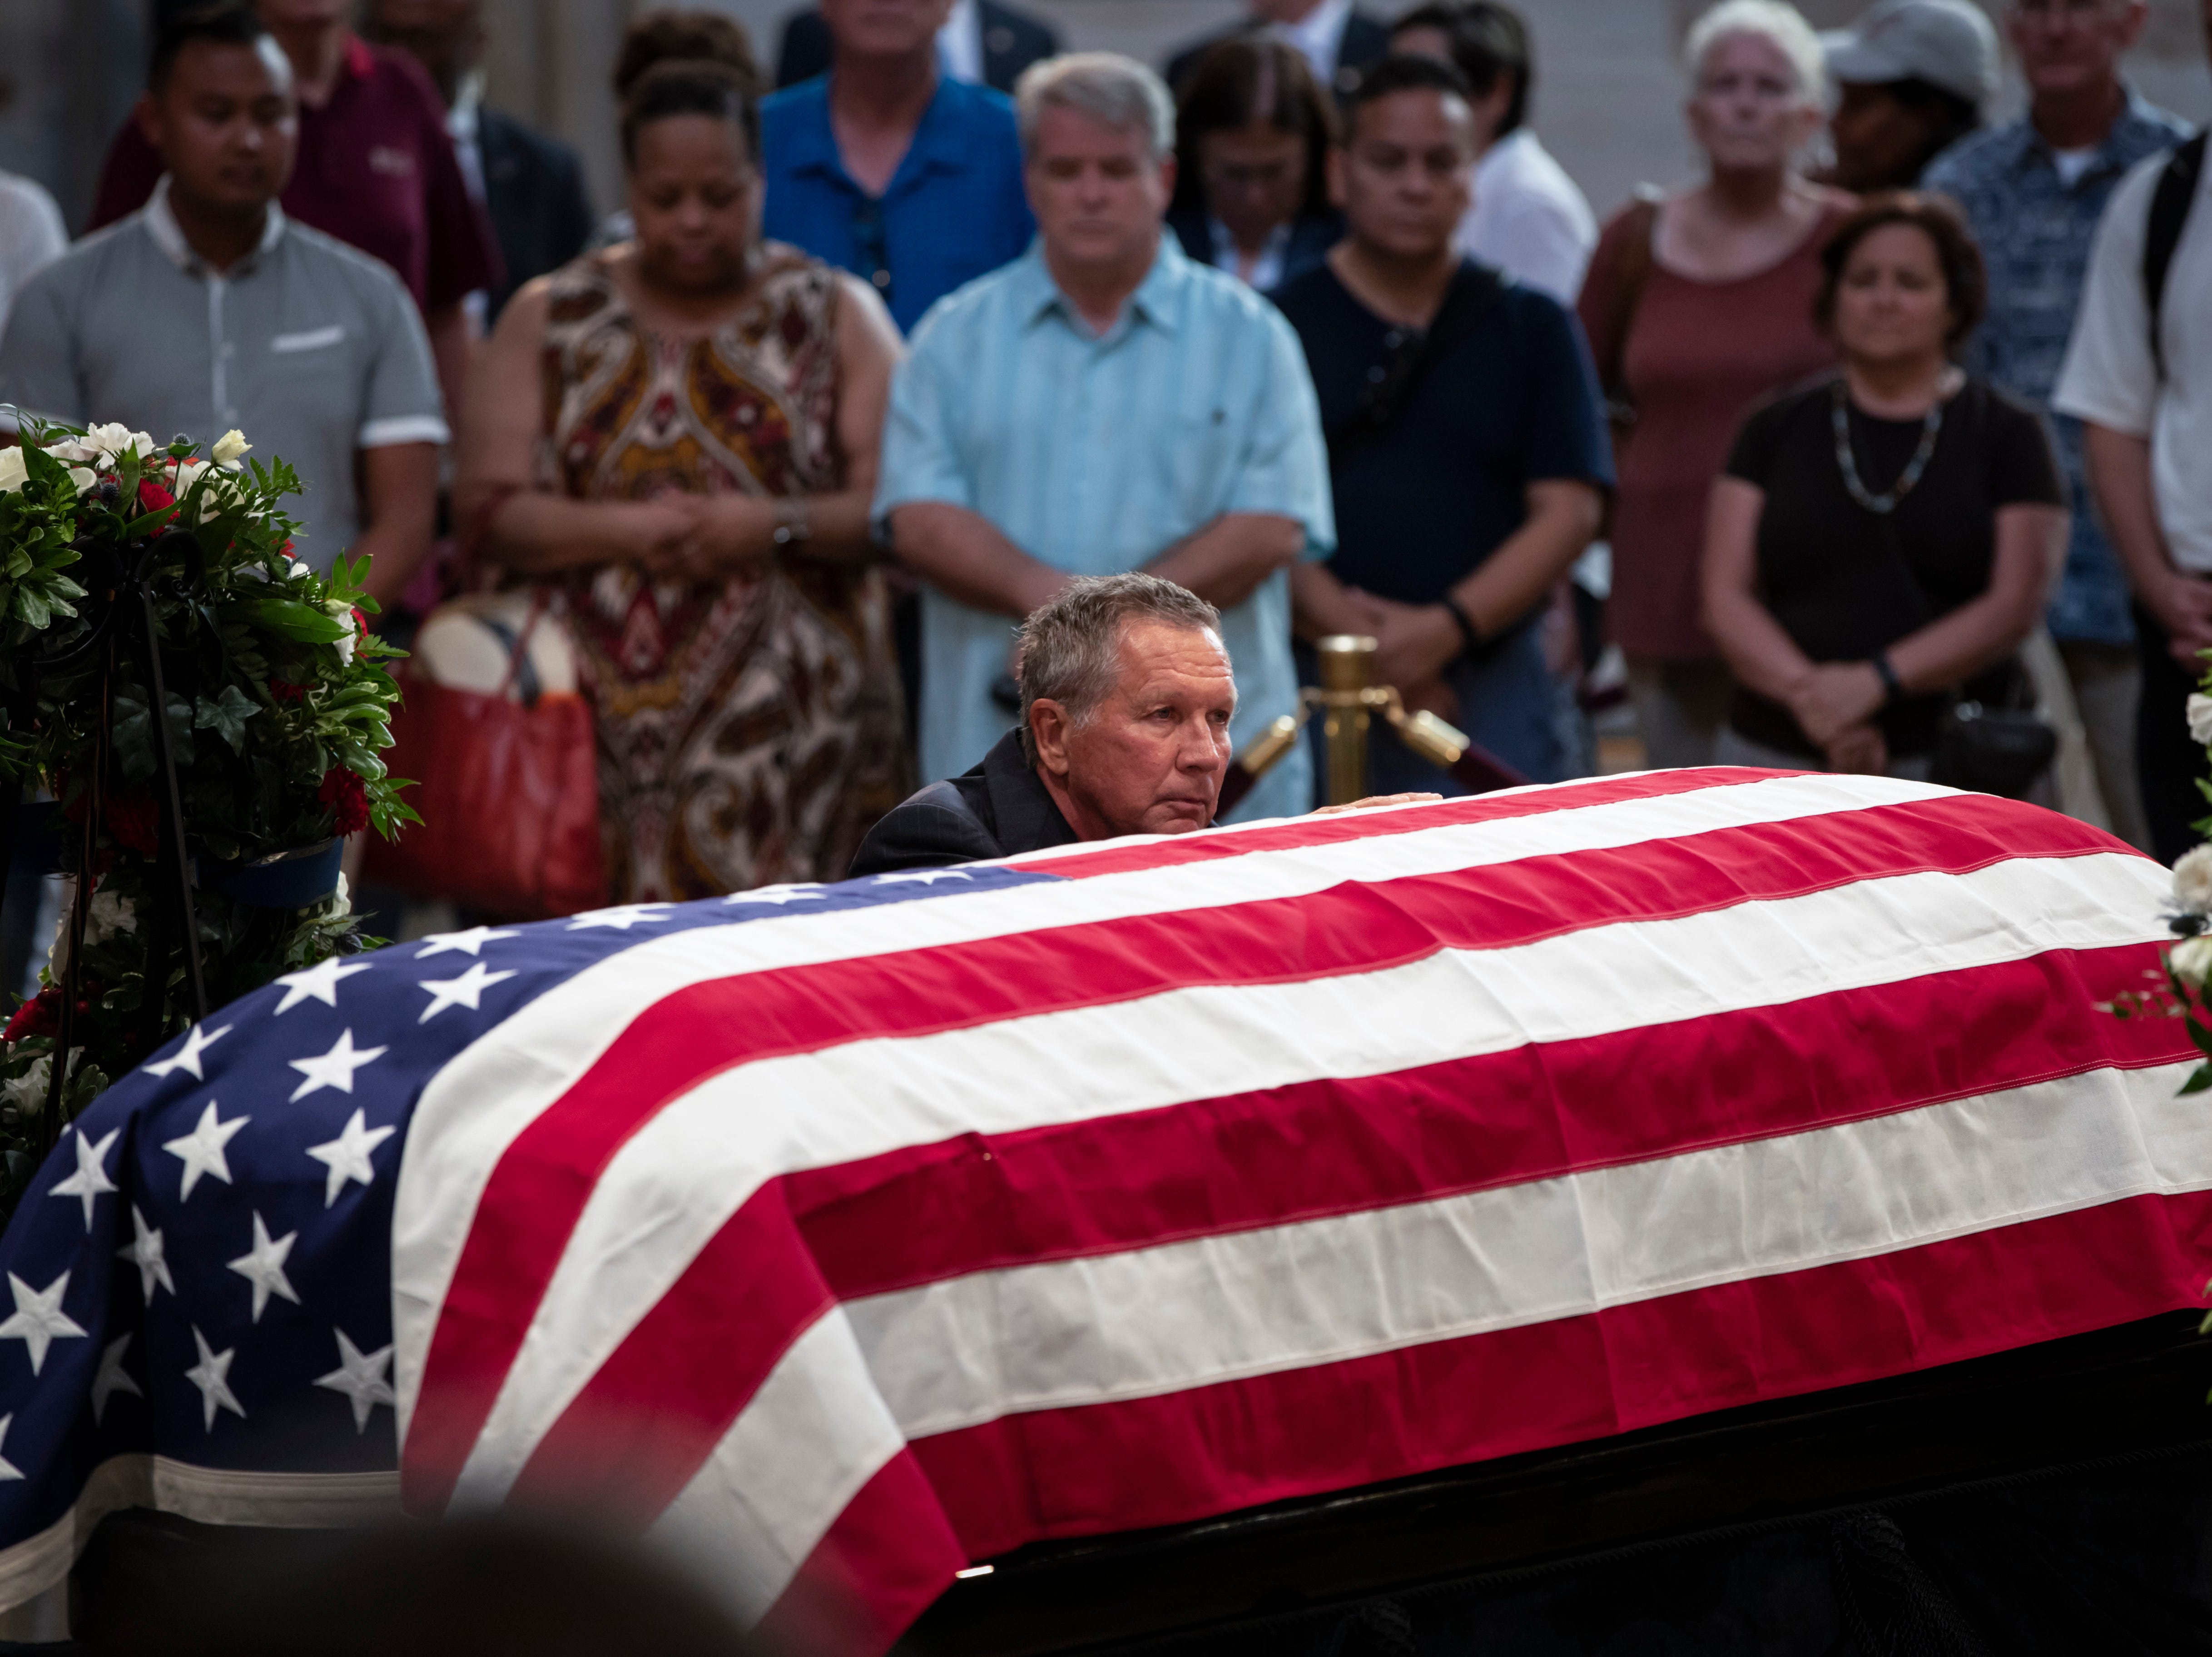 Ohio Gov. John Kasich kneels at the flag-draped casket of Sen. John McCain of Arizona, who lived and worked in Congress over four decades, in the U.S. Capitol rotunda, Friday, Aug. 31, 2018, in Washington. (AP Photo/J. Scott Applewhite)